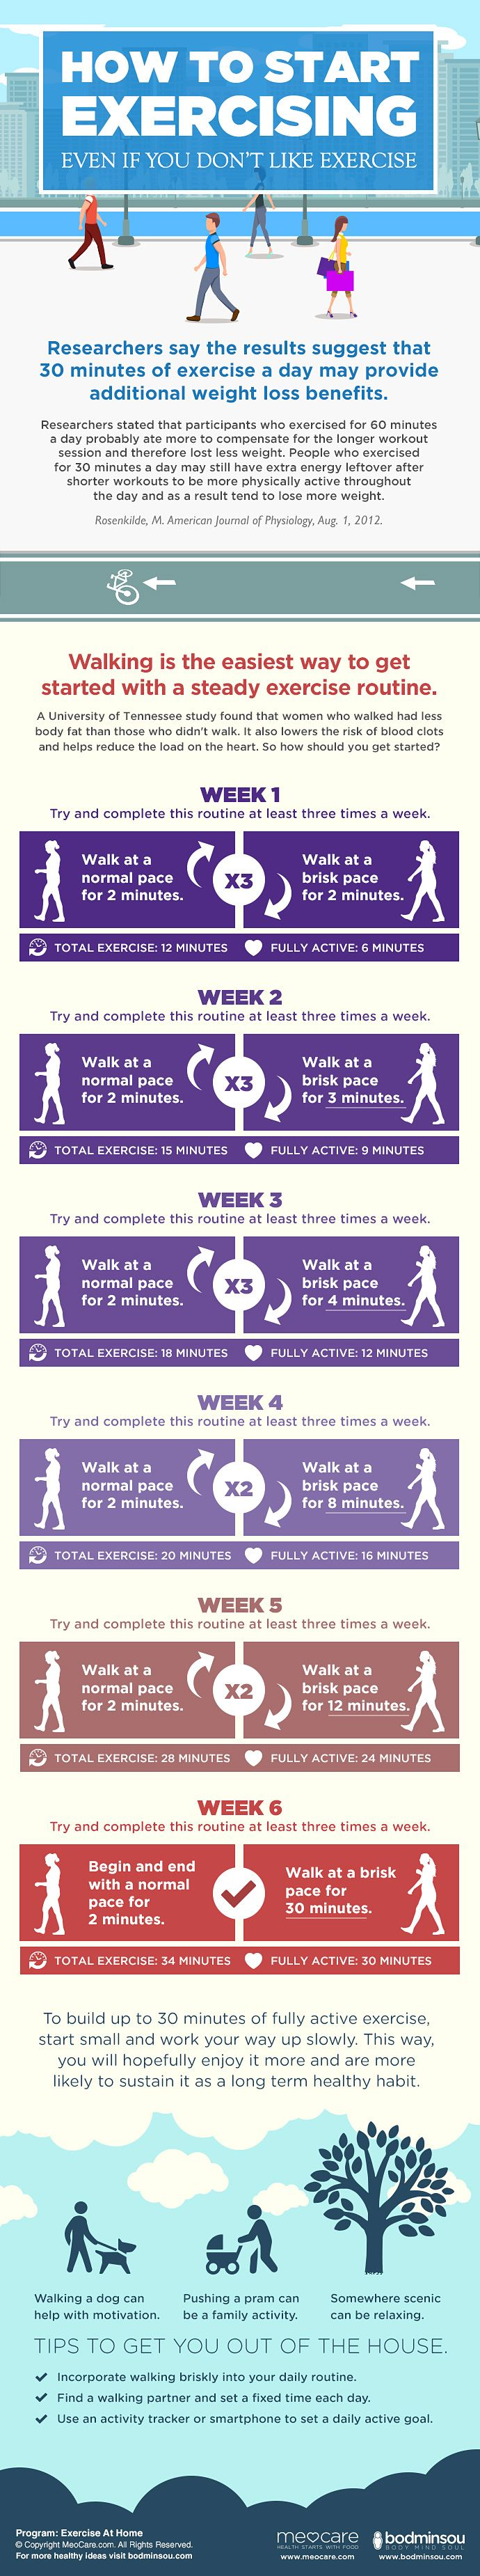 How to start exercising. How to start exercising can be difficult if you hate exercise. In our step by step guide we help you to build up to 30 minutes of fully active exercise. This way, you will hopefully enjoy it more and are more likely to sustain it as a long term healthy habit. Walking is the easiest way to get started with a steady exercise routine.